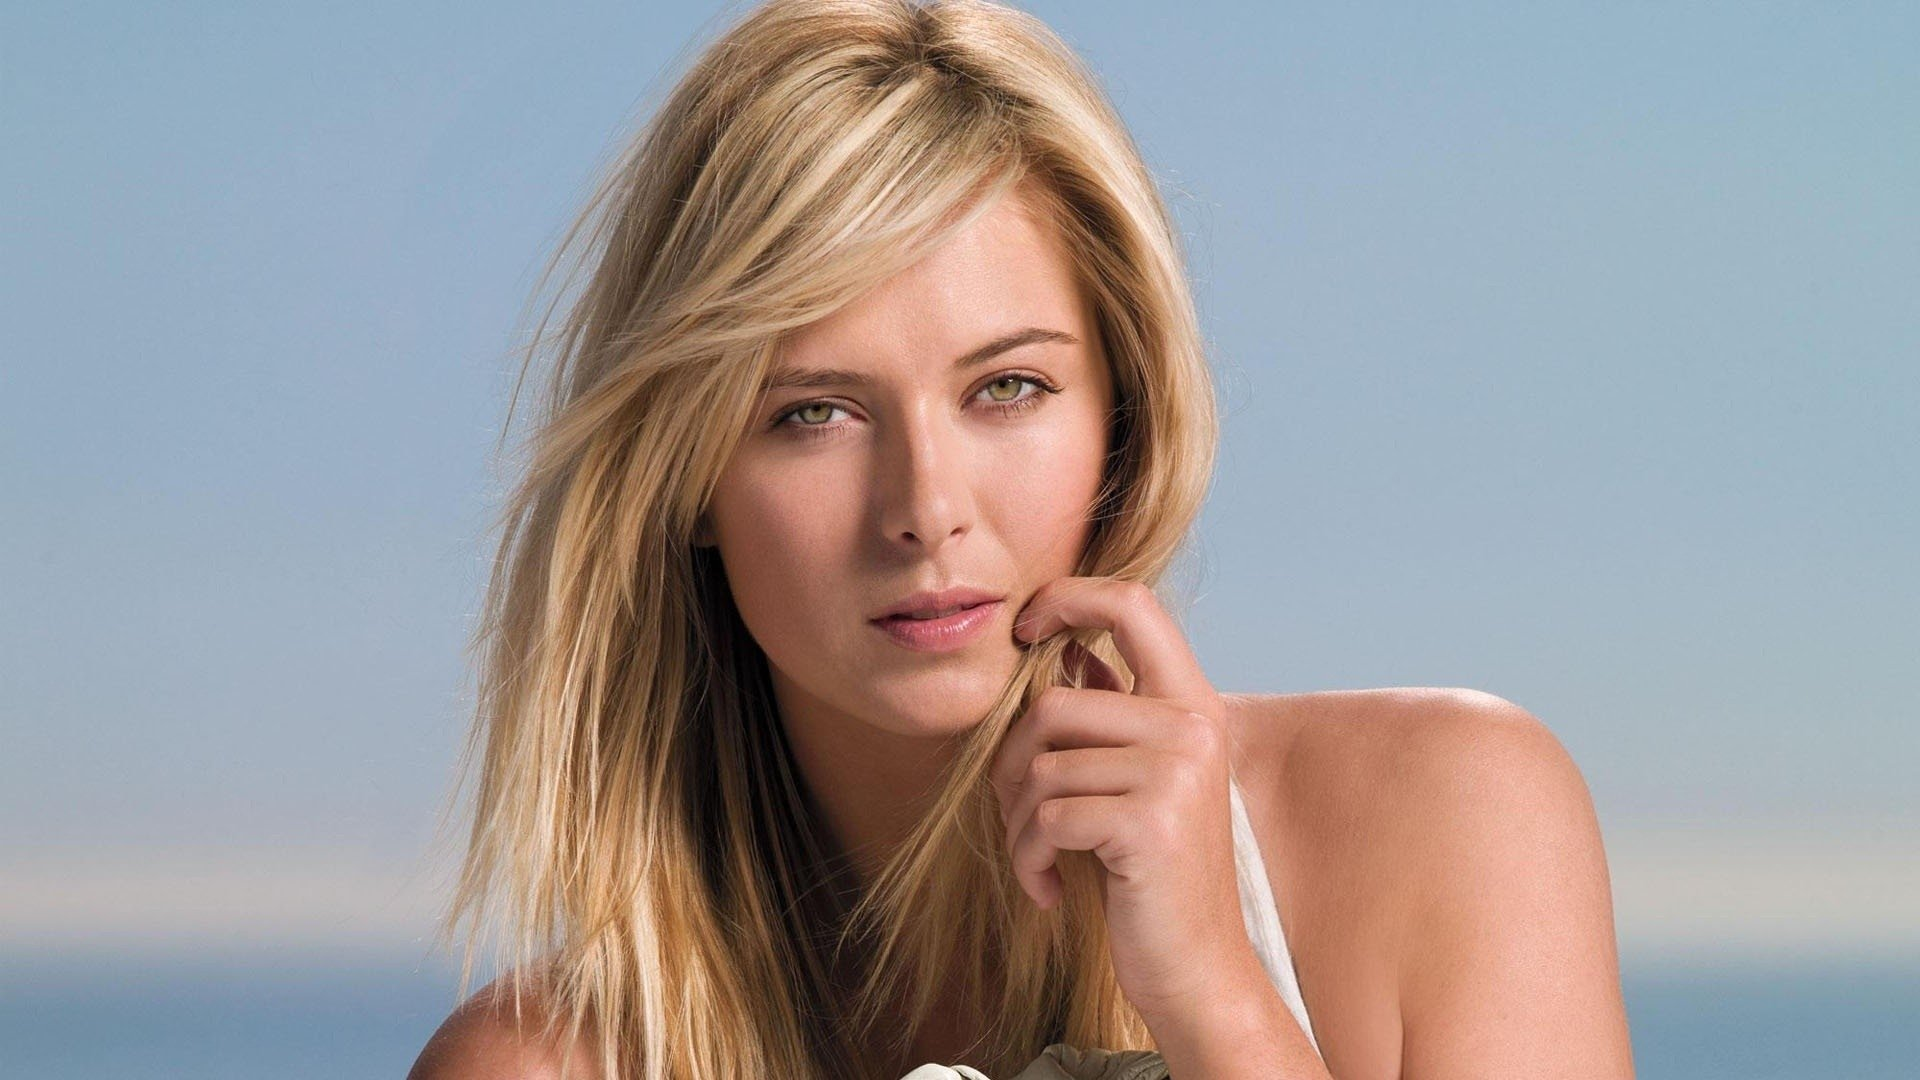 maria sharapova full hd wallpaper and background image | 1920x1080